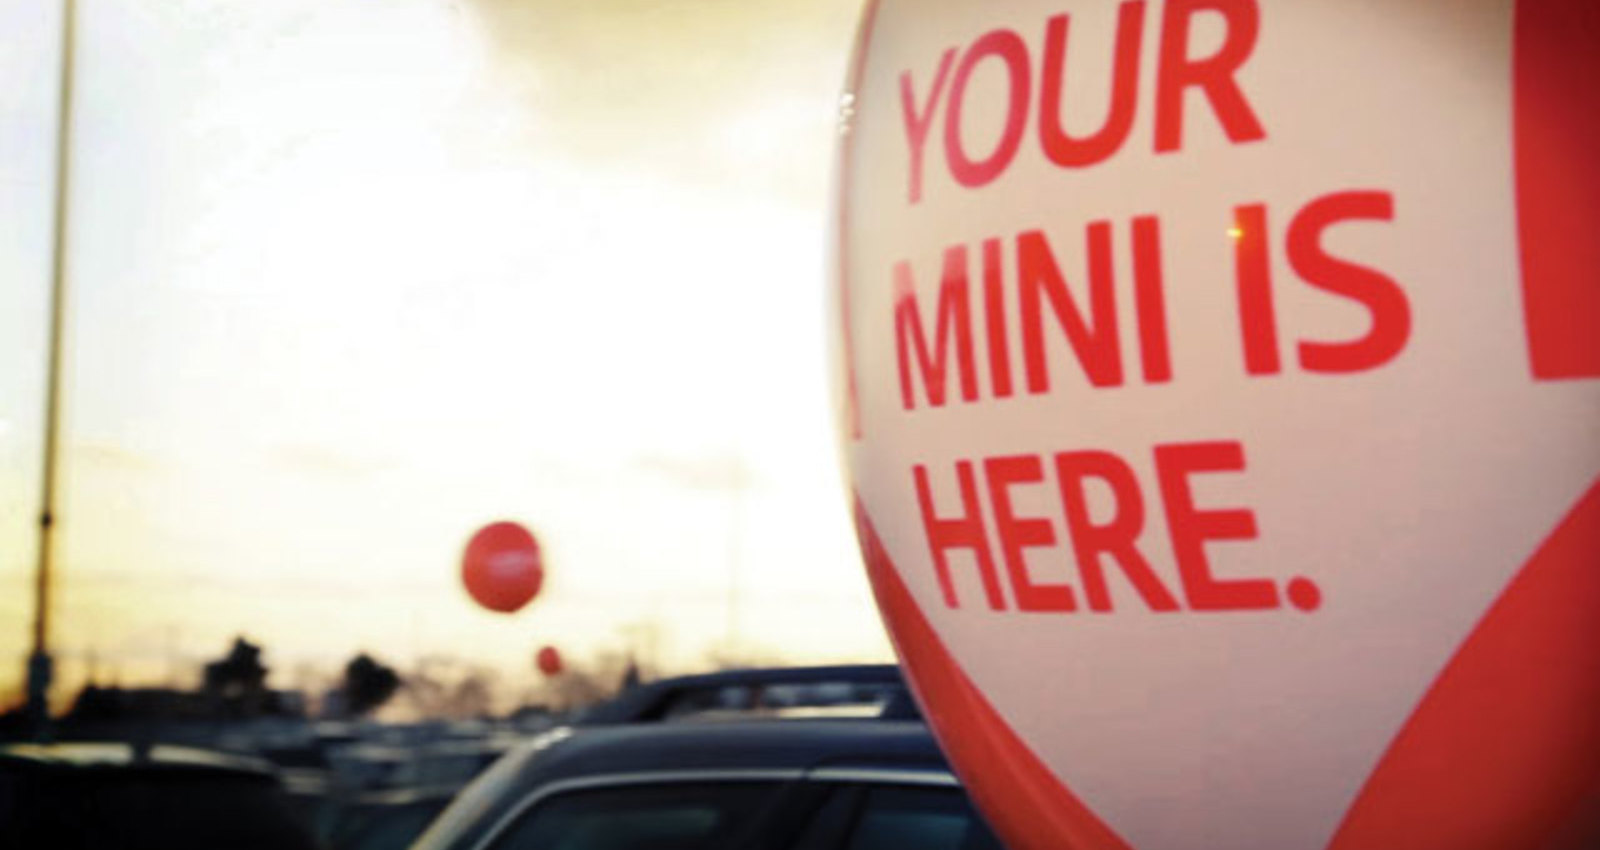 MINI Parked Car Locator